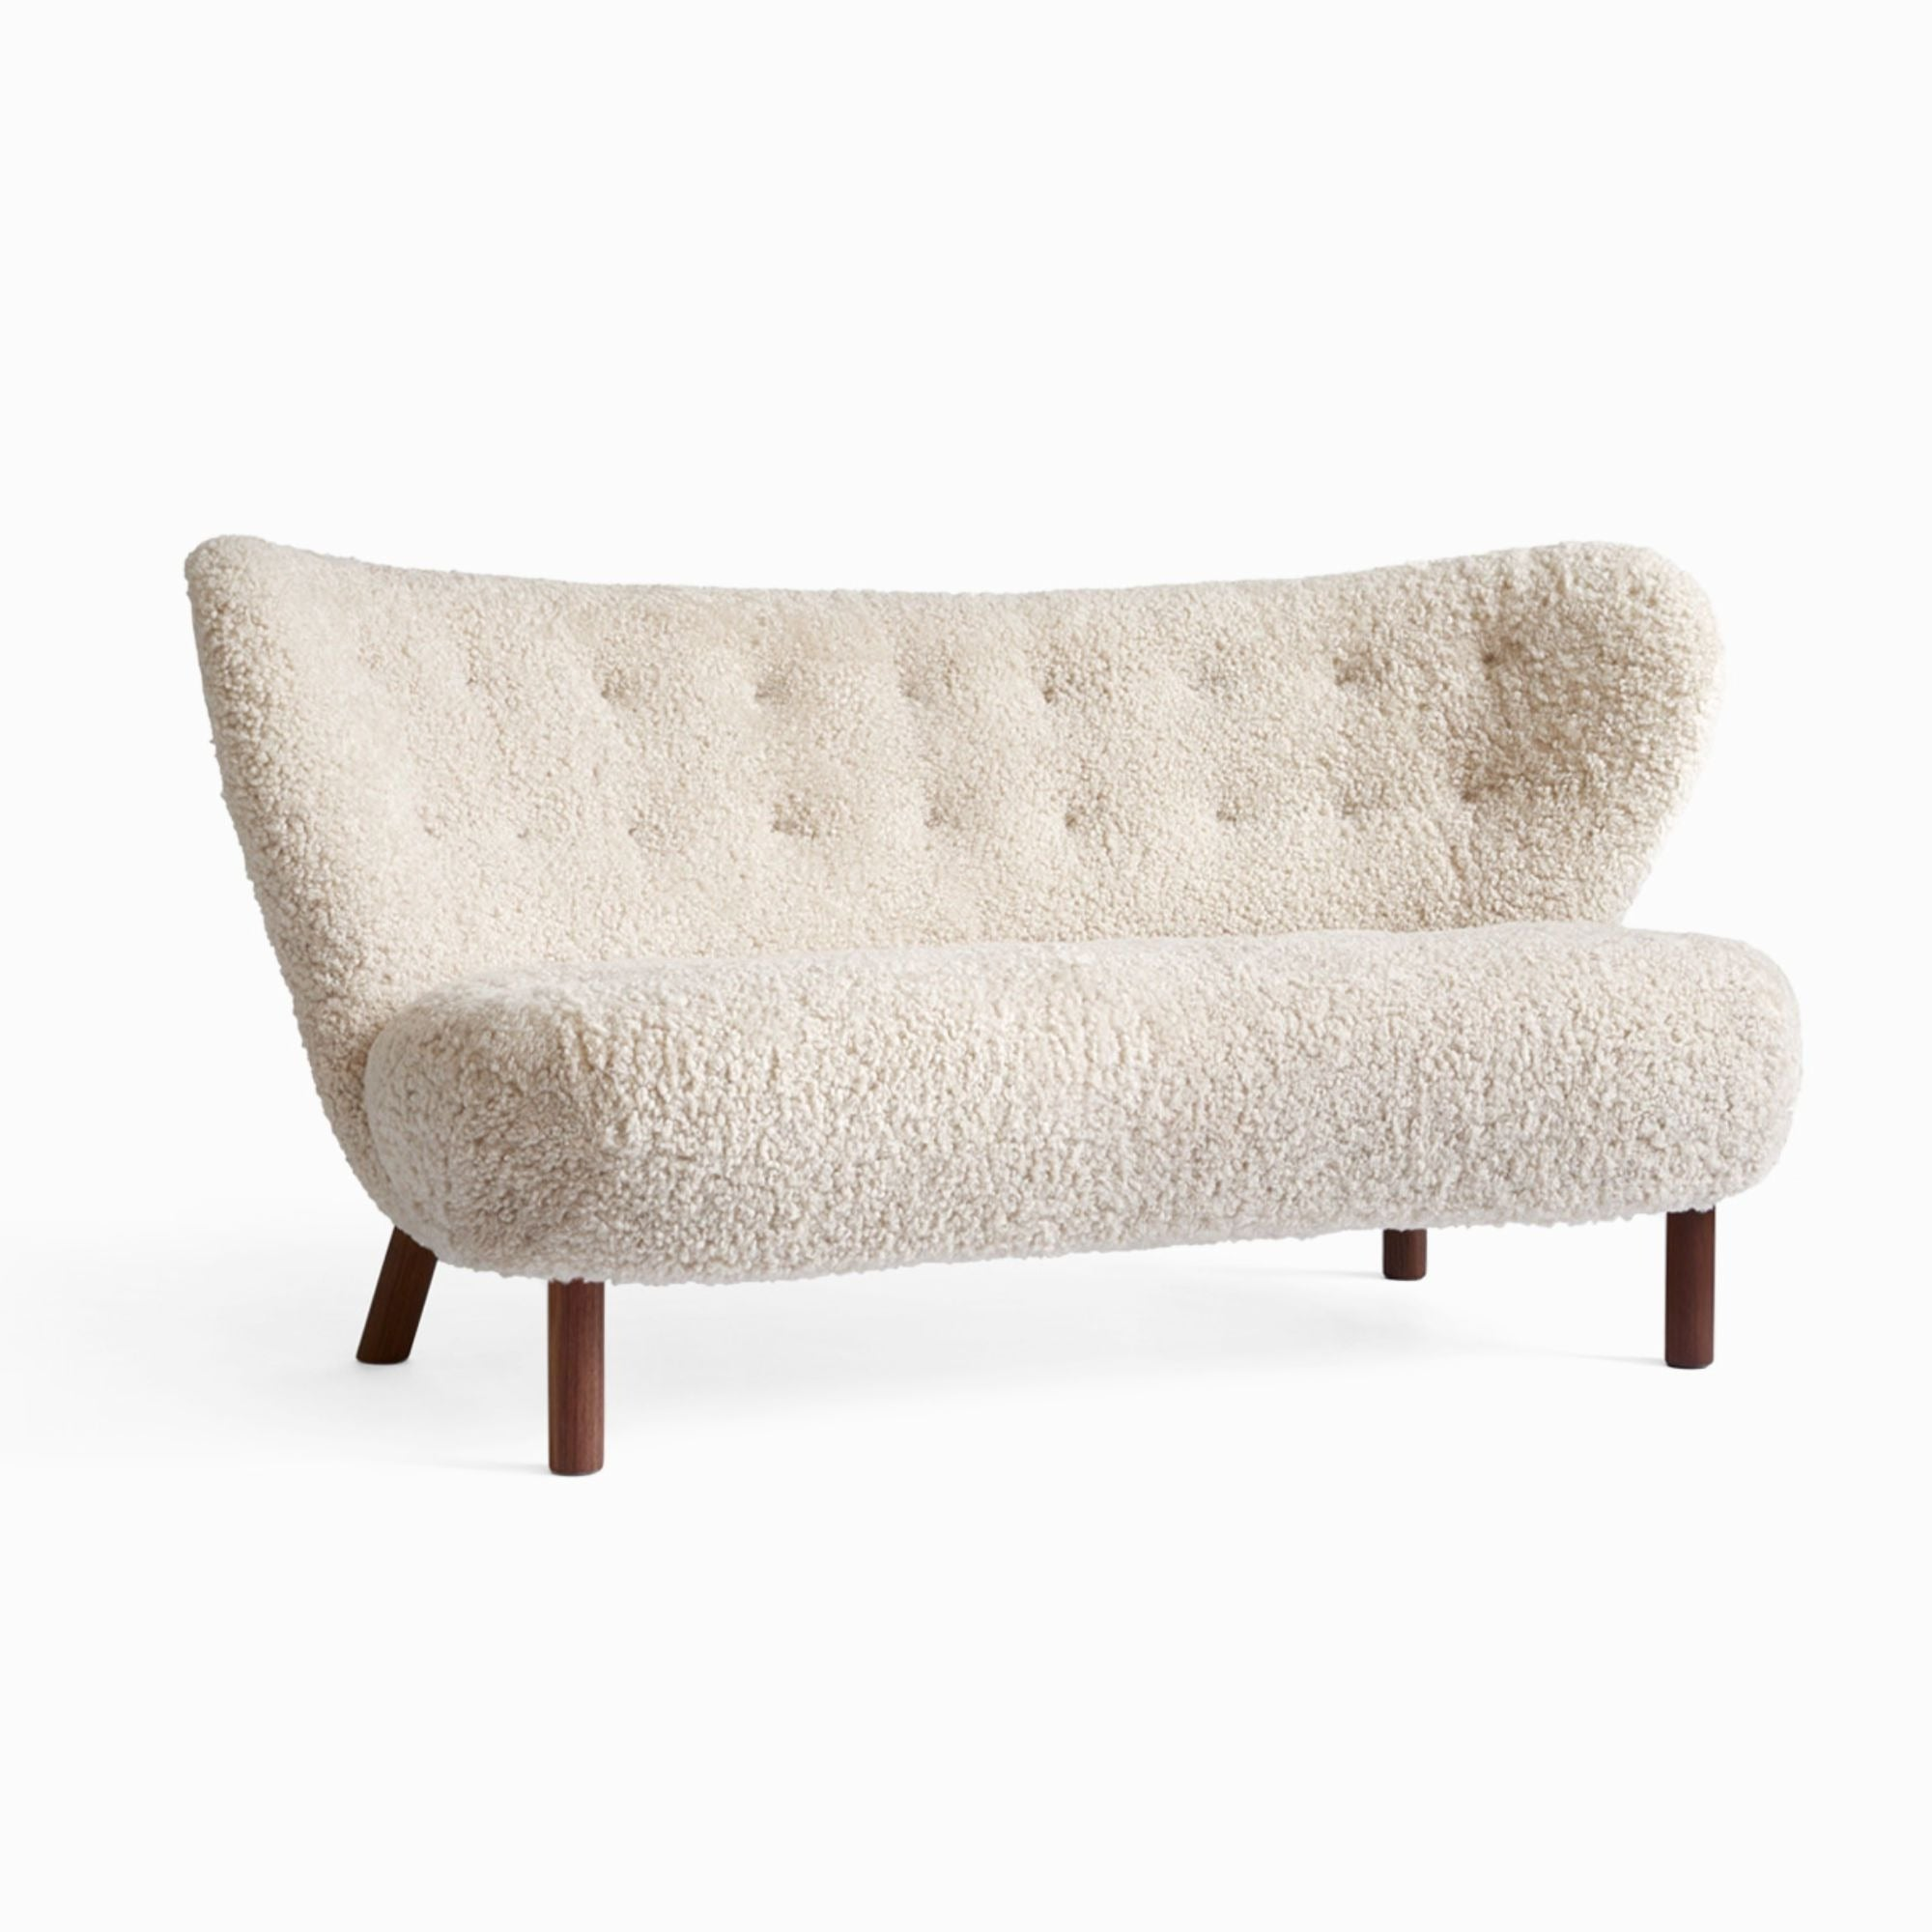 &Tradition VB2 Little Petra 2 Seater Sofa , Sheepskin Moonlight/Walnut Base